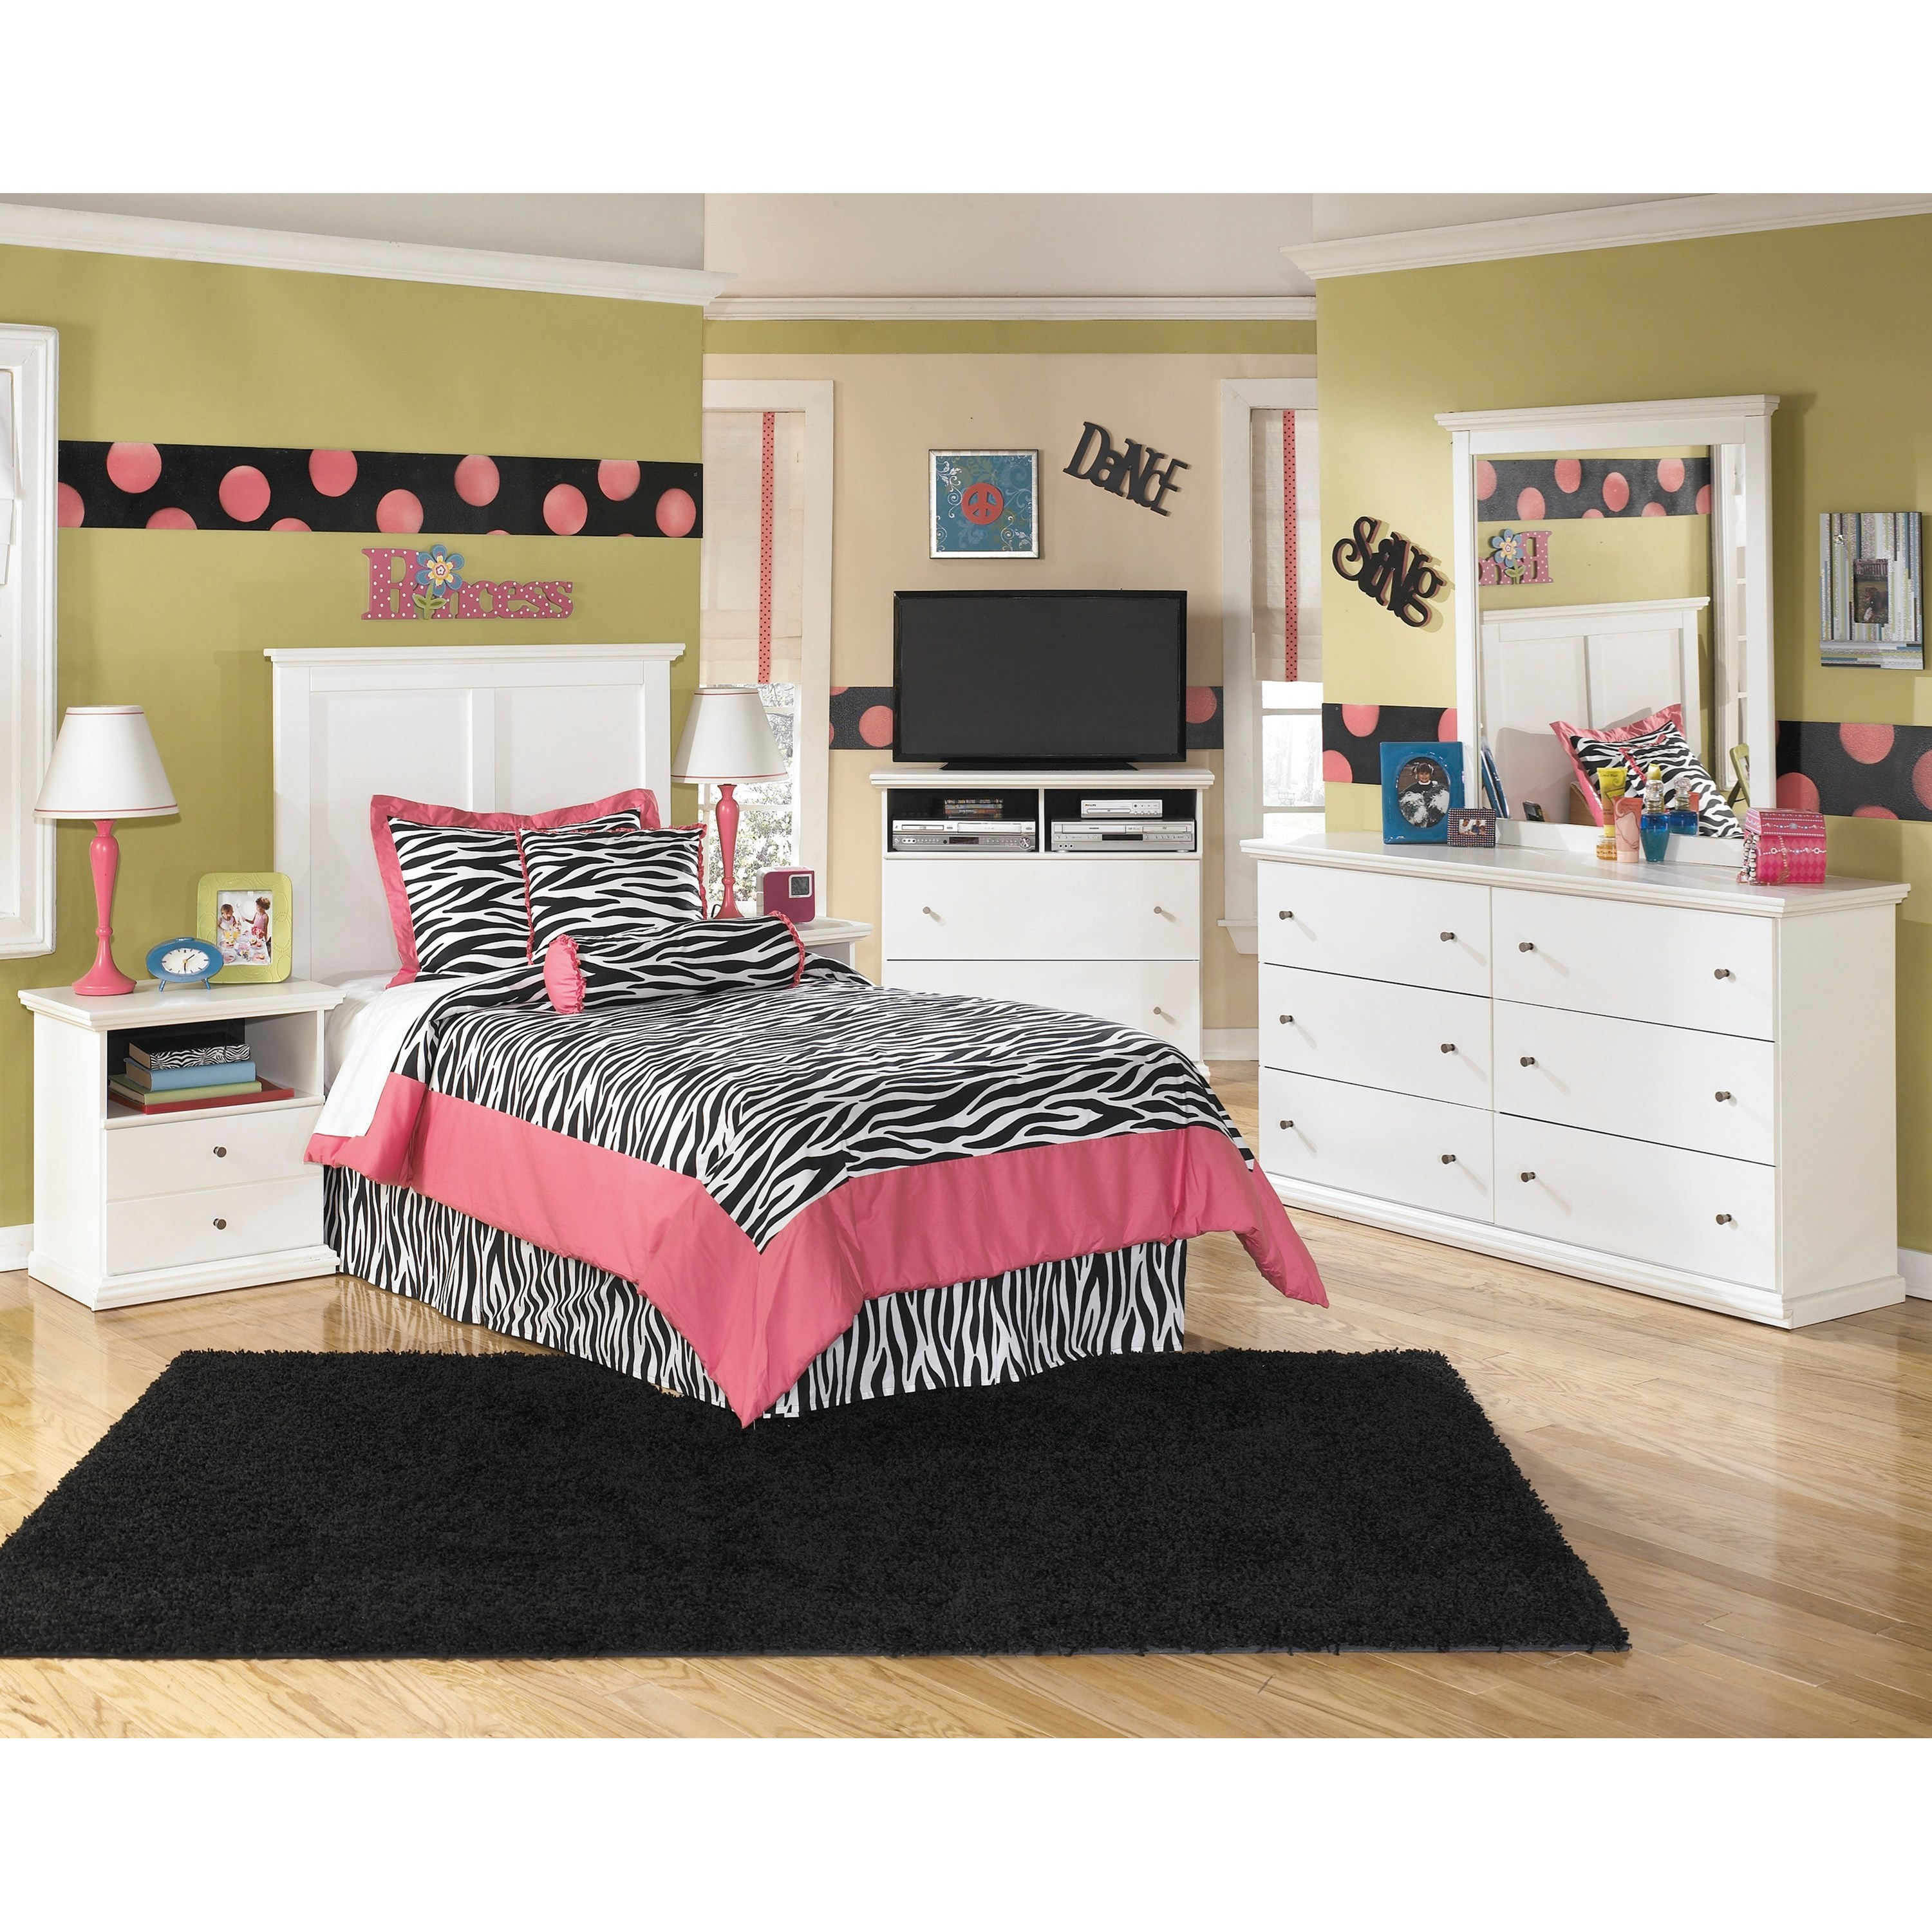 Signature Design by Ashley Bostwick Shoals Twin Bedroom Group - Item Number: B139 T Bedroom Group 3